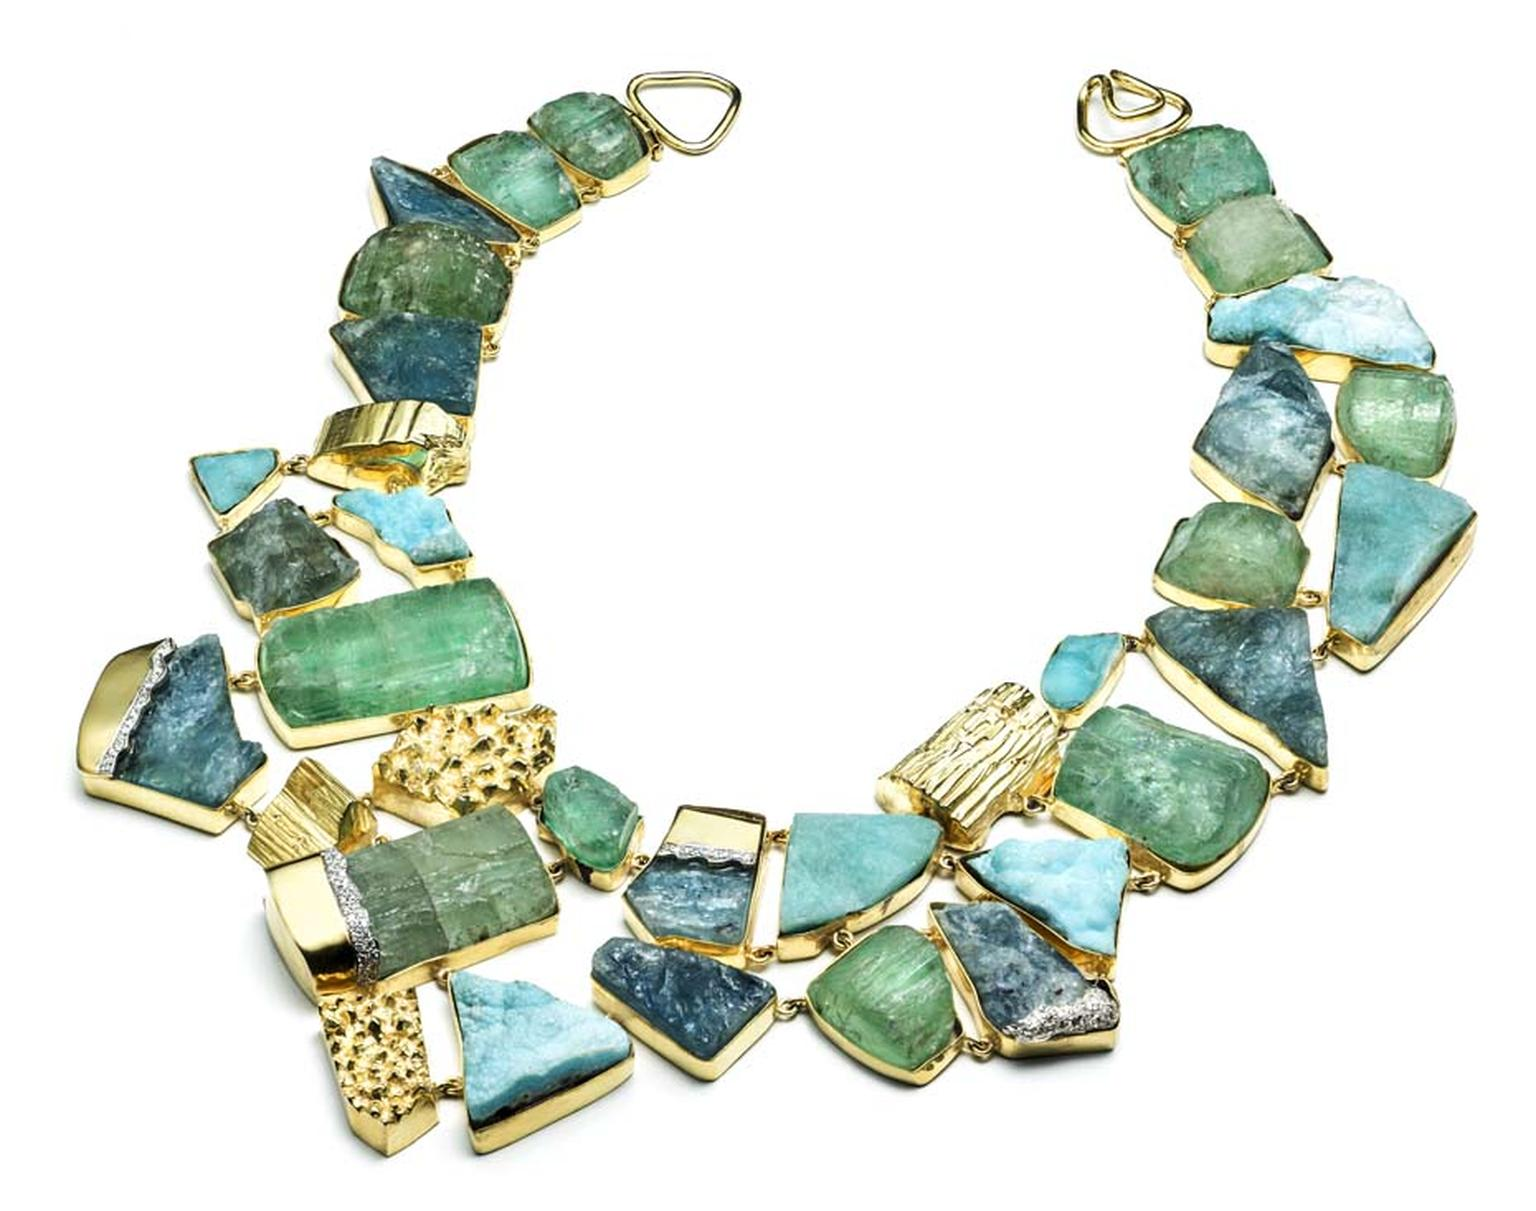 Kara Ross Petra Bib necklace with raw green beryl, hemimorphite, aquamarine and diamonds set in gold